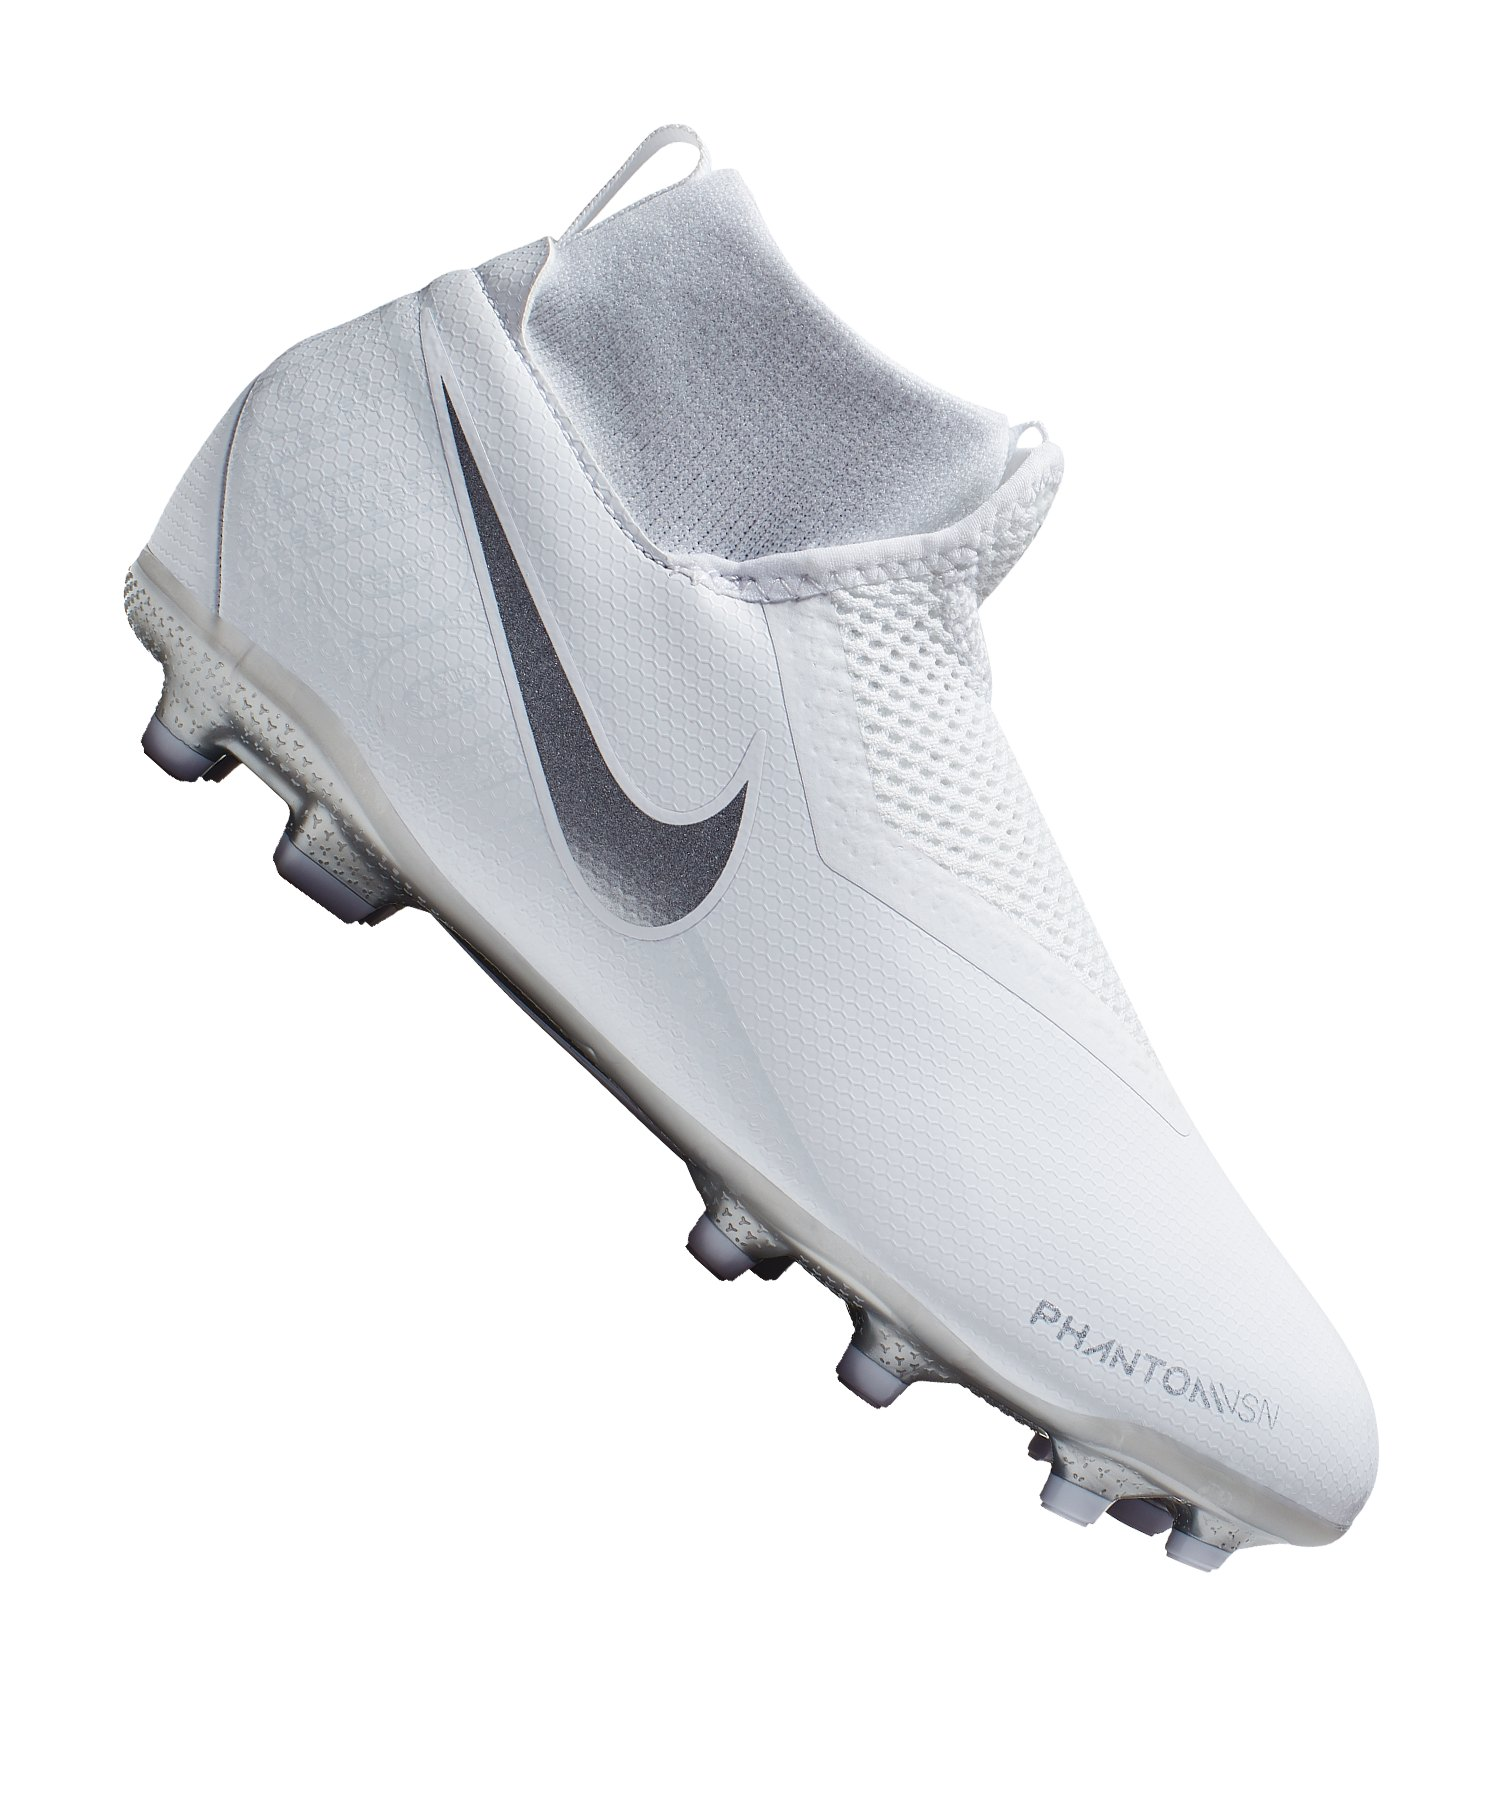 Nike Phantom Vision Academy DF MG Kids Weiss F100 - weiss